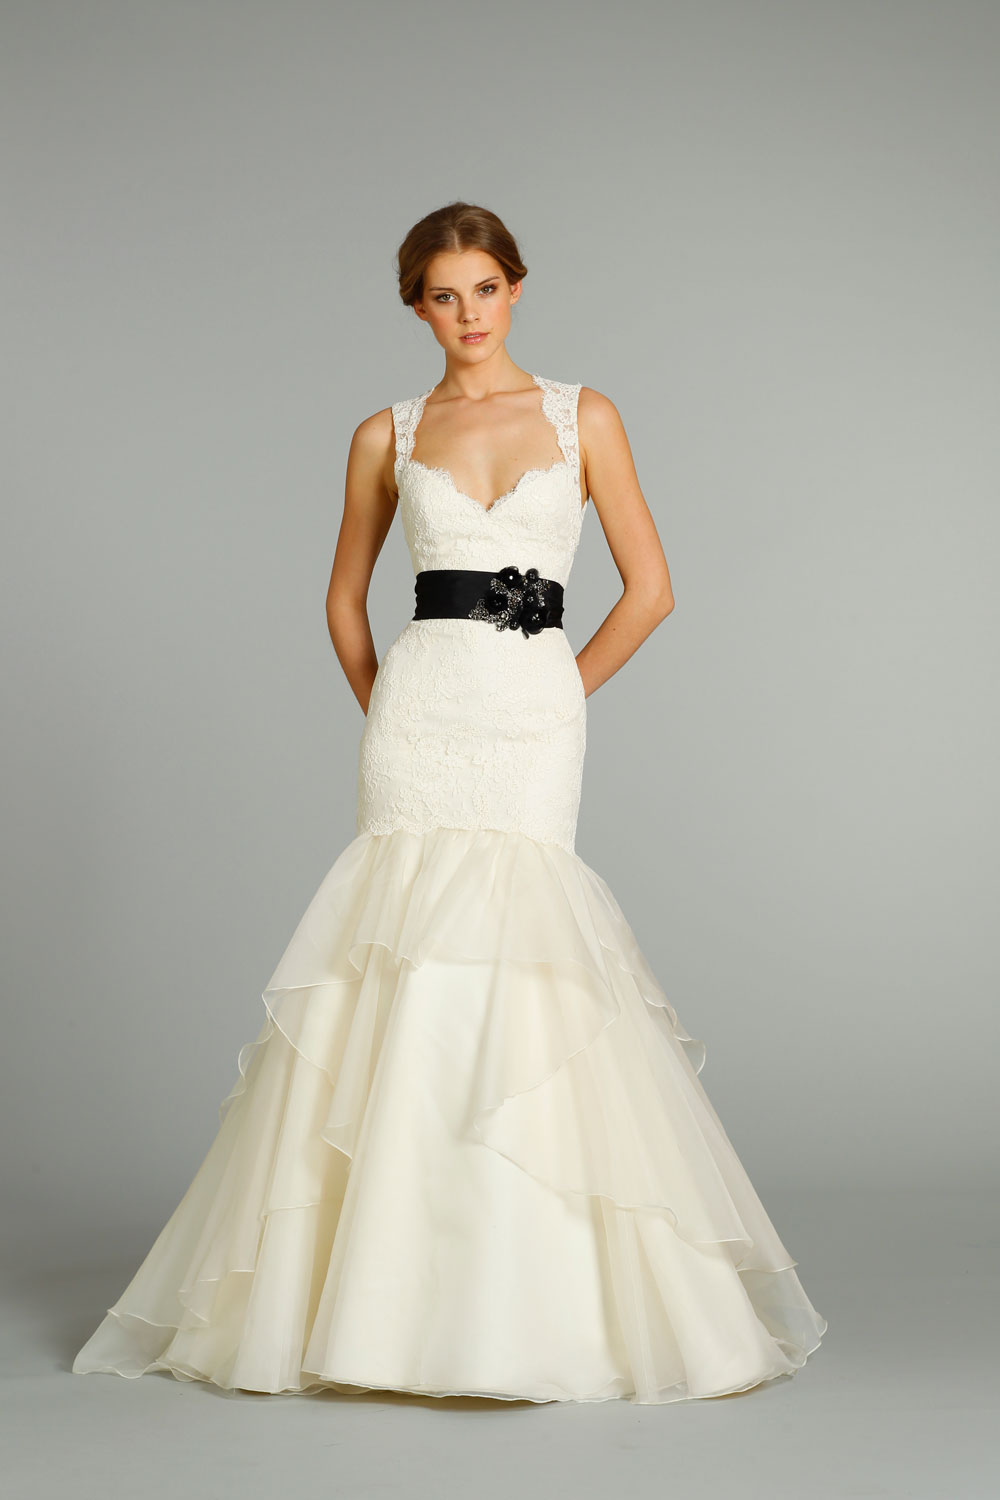 Fall 2012 wedding dress jim hjelm bridal gowns 8262 for Jim hjelm wedding dresses